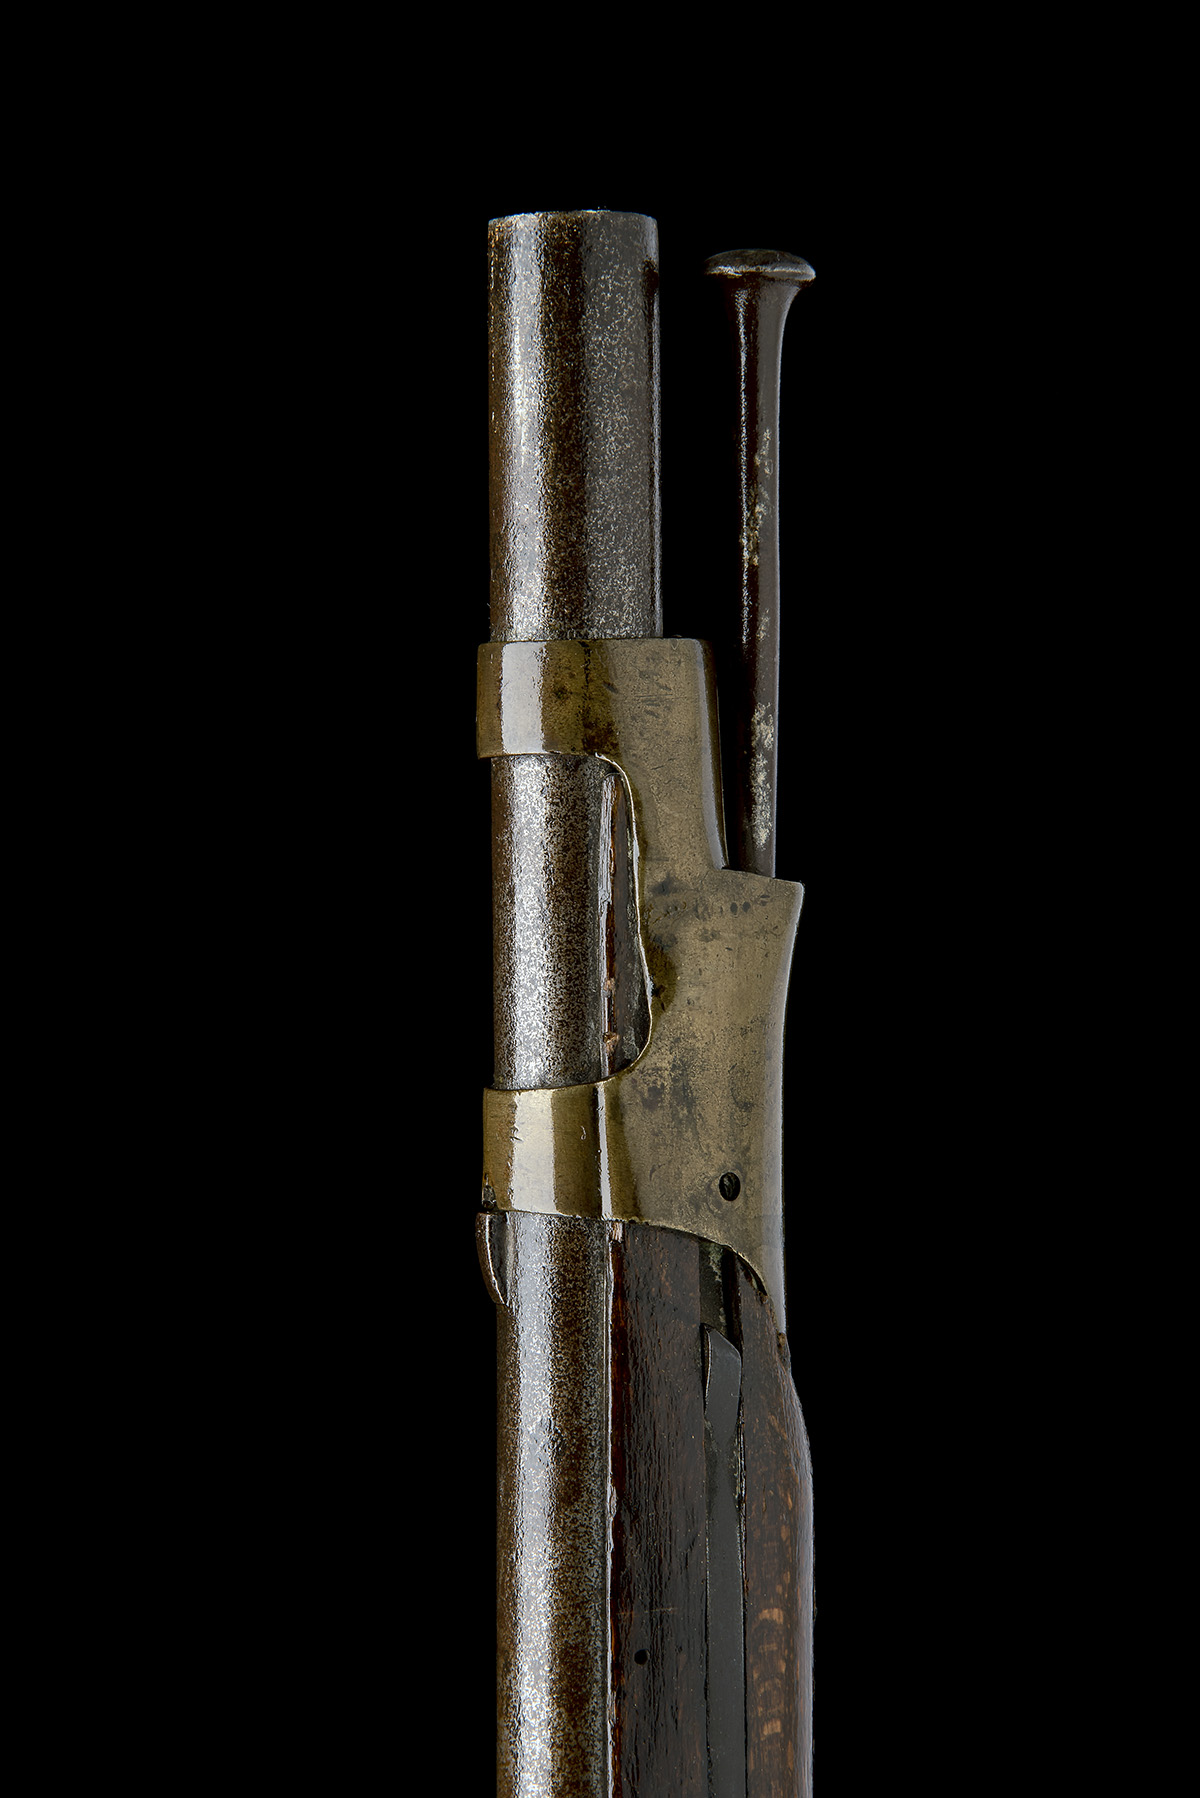 DANZIG ARSENAL, GERMANY A .695 PERCUSSION RIFLED MUSKET, MODEL 'POTSDAM STYLE', serial no. Z843, - Image 6 of 8